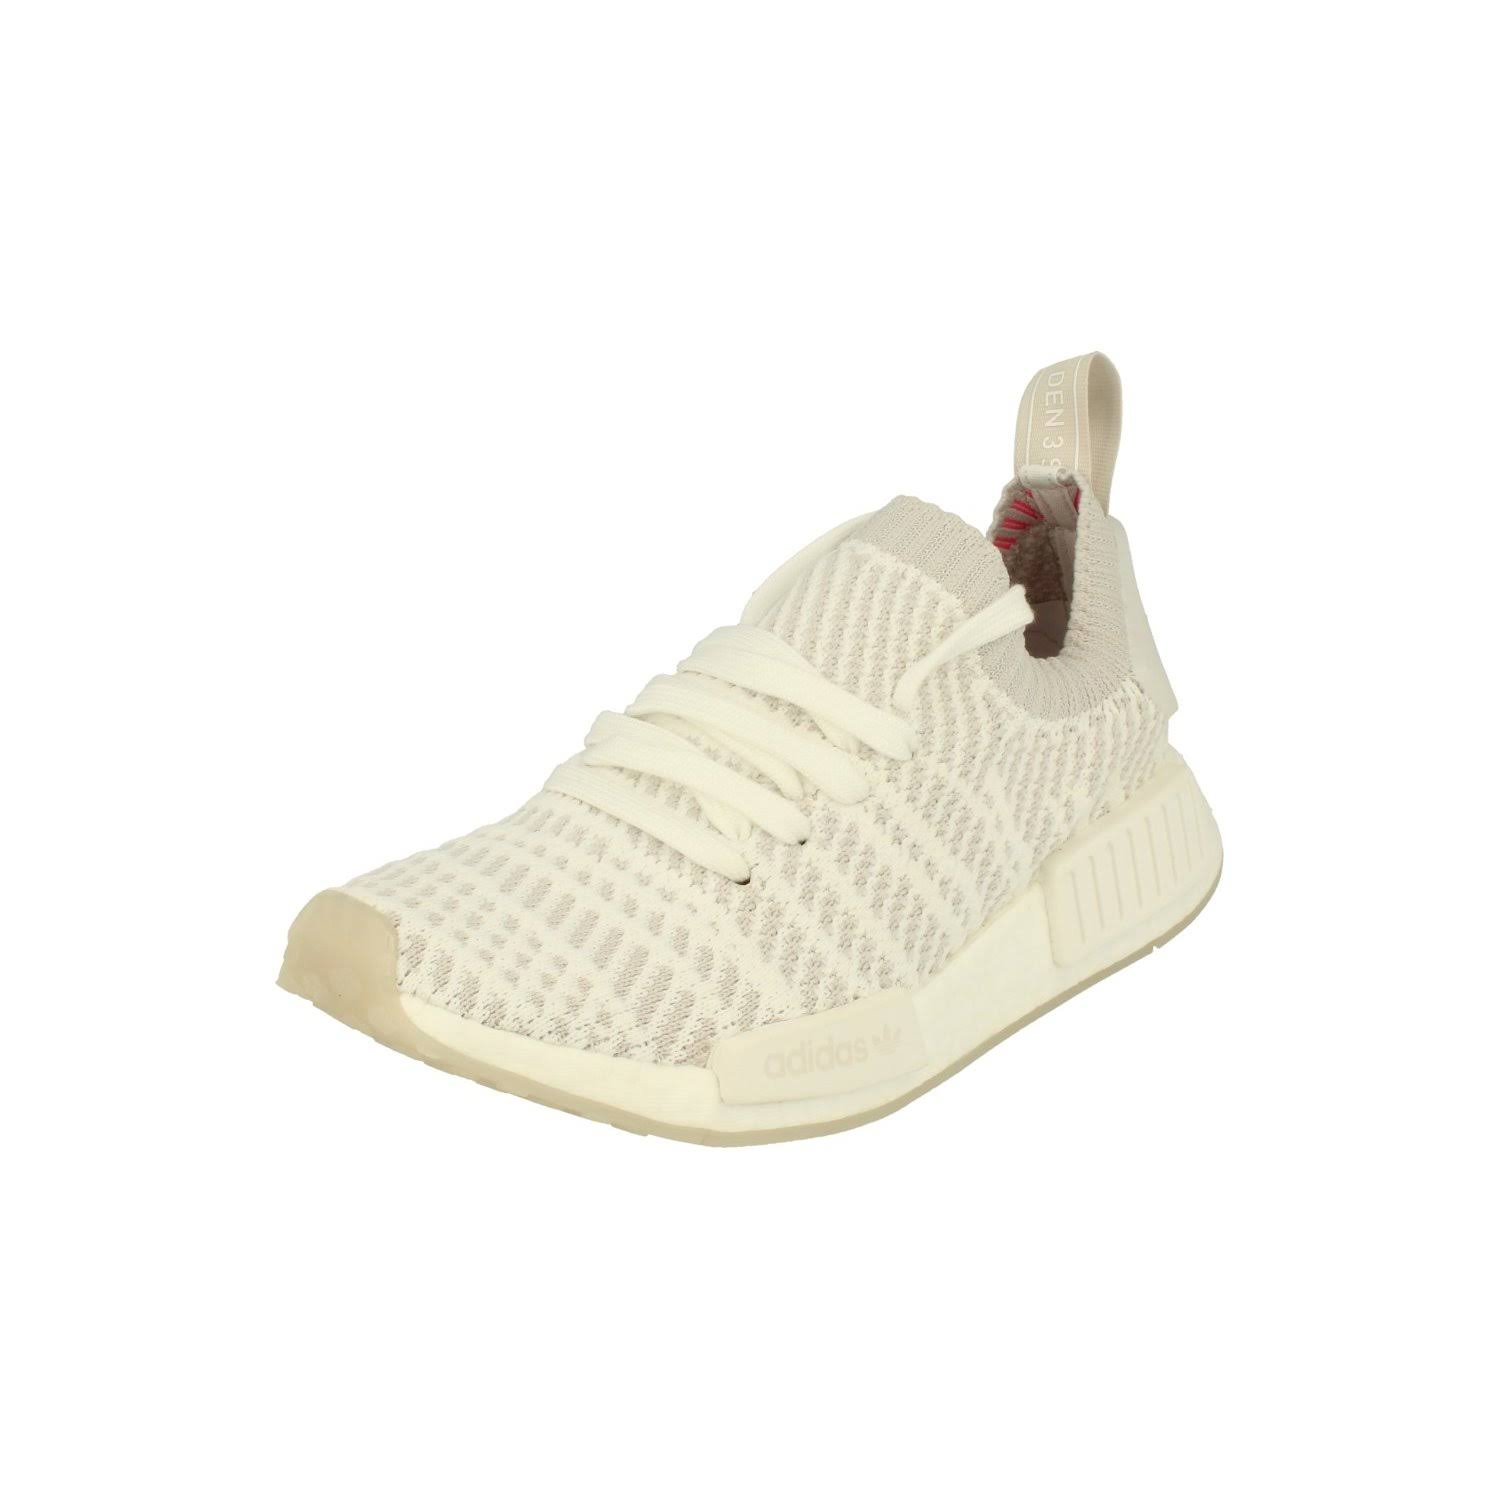 (5.5 (Adults')) Adidas Originals Nmd_R1 Stlt Pk Mens Running Trainers Sneakers